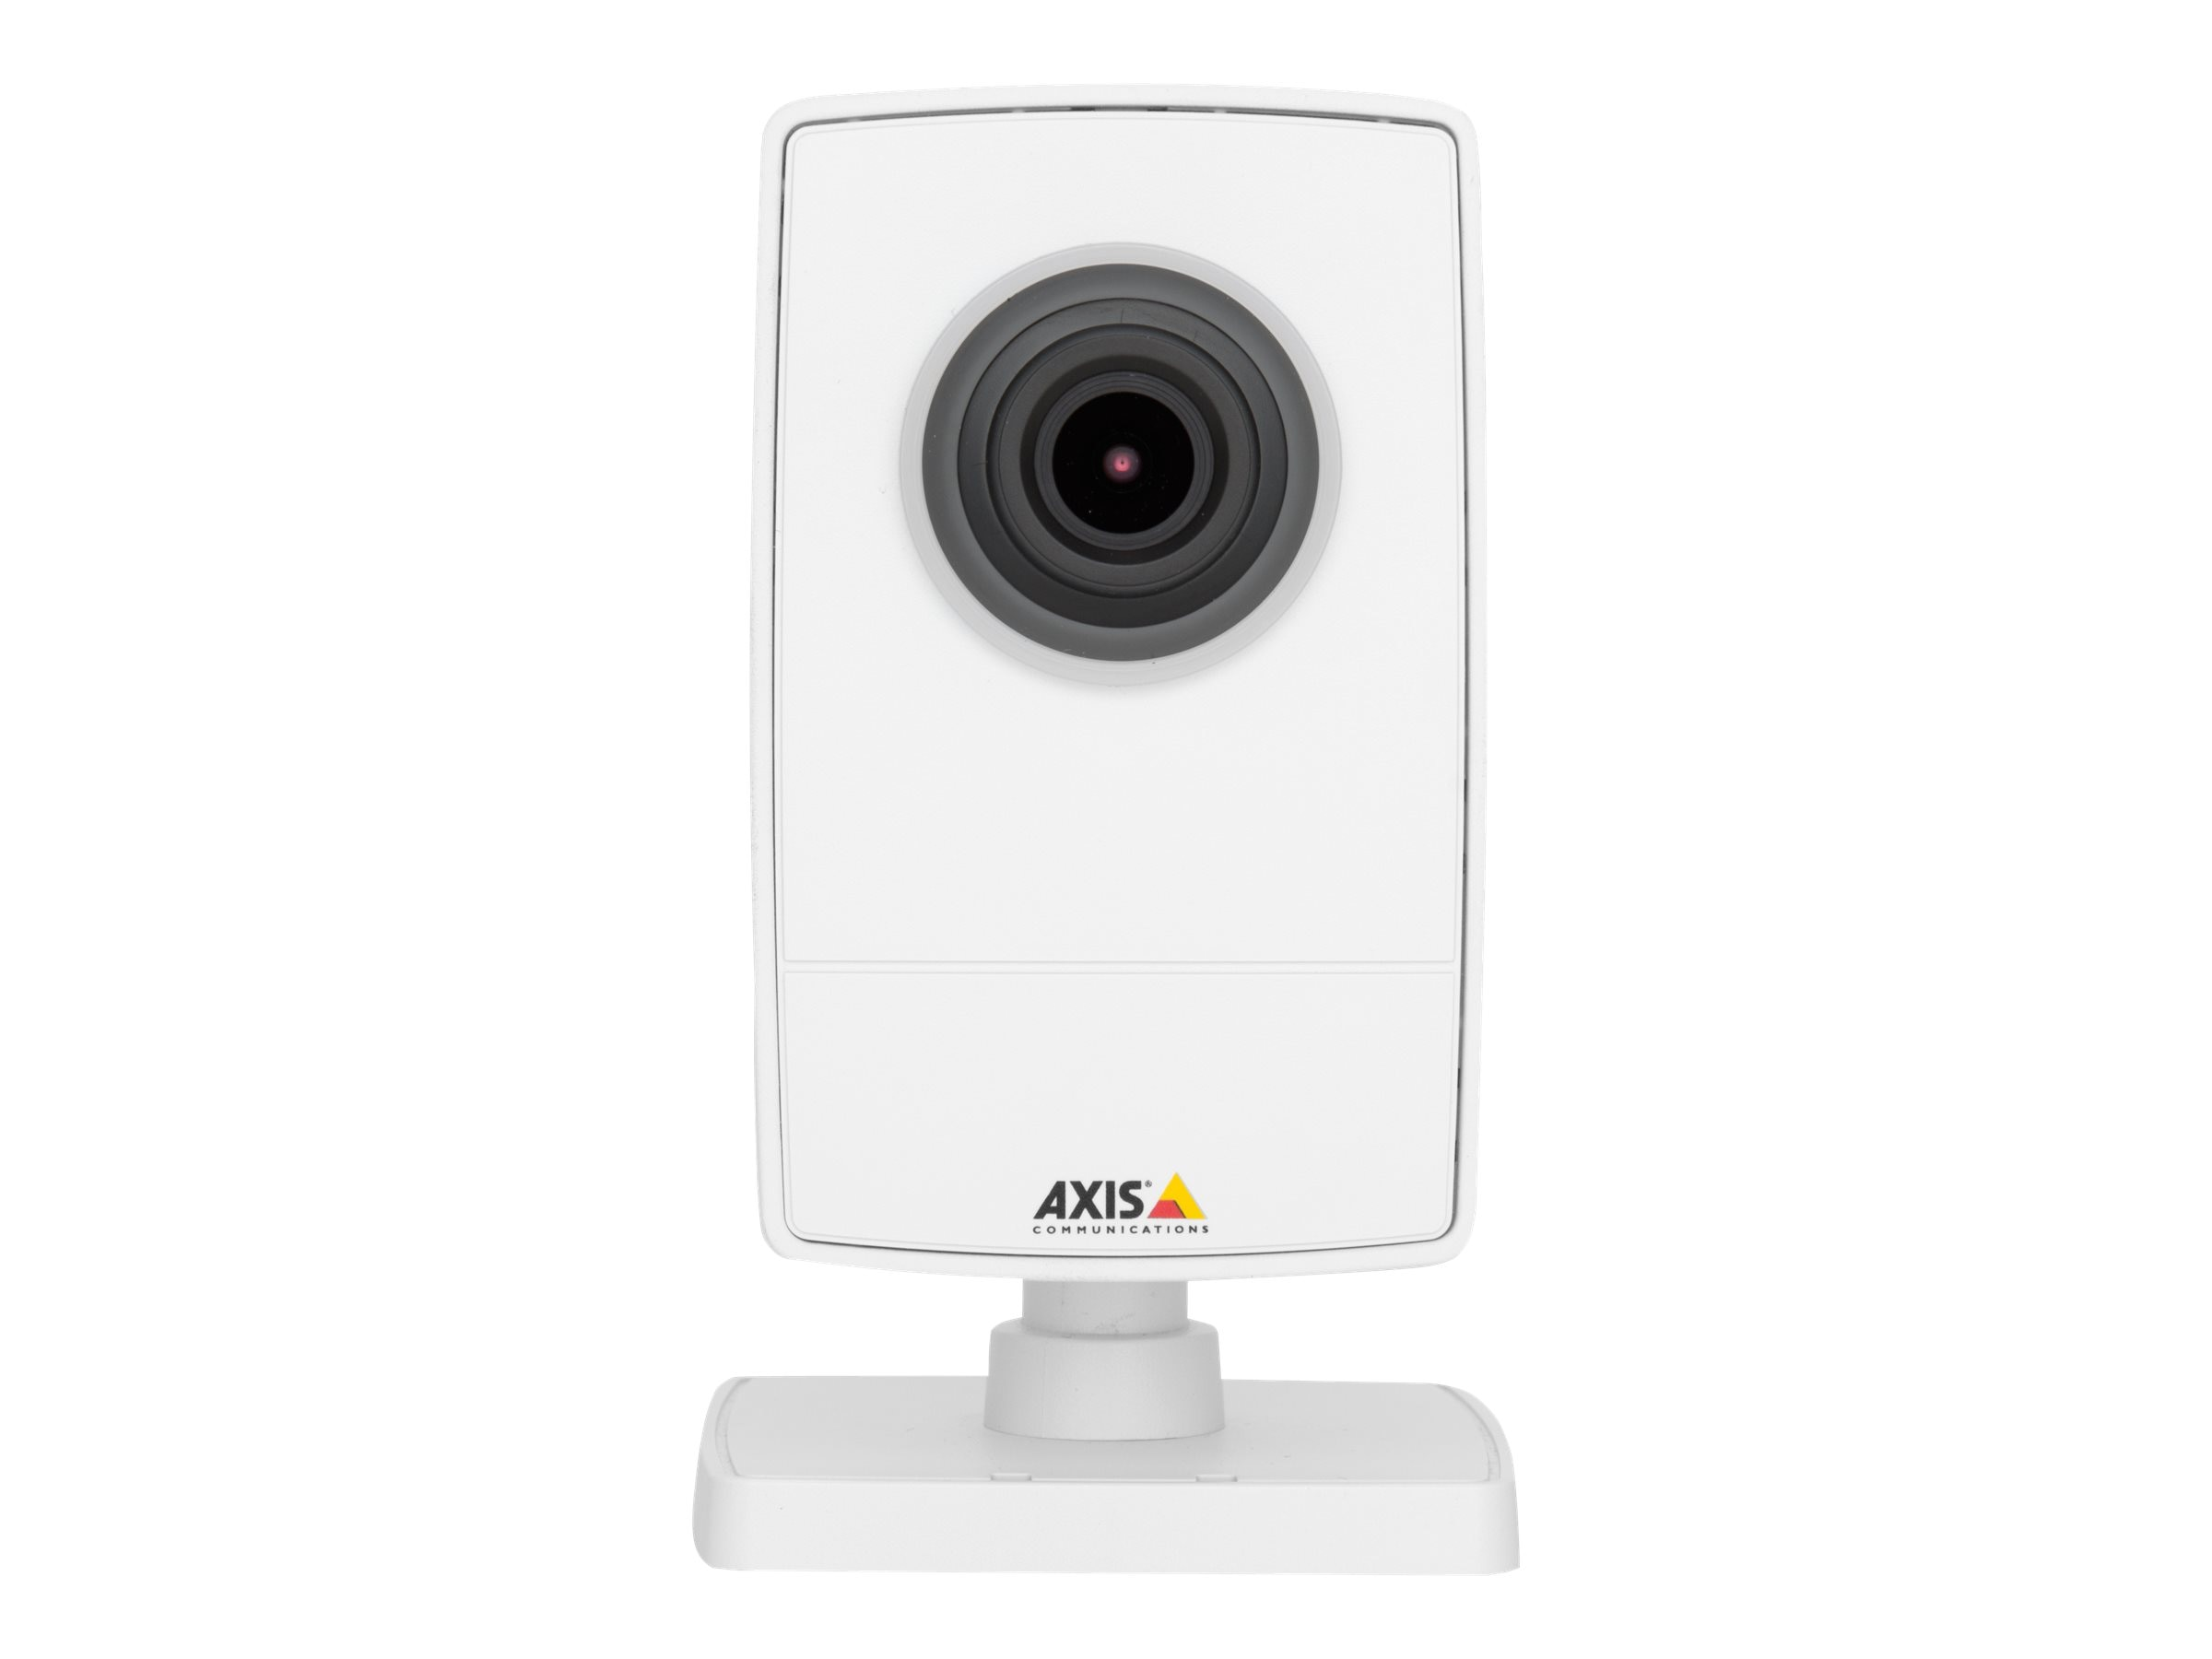 Axis M1025 2MP 1080p Fixed Network Camera, 10-Pack, 0555-024, 17611959, Cameras - Security